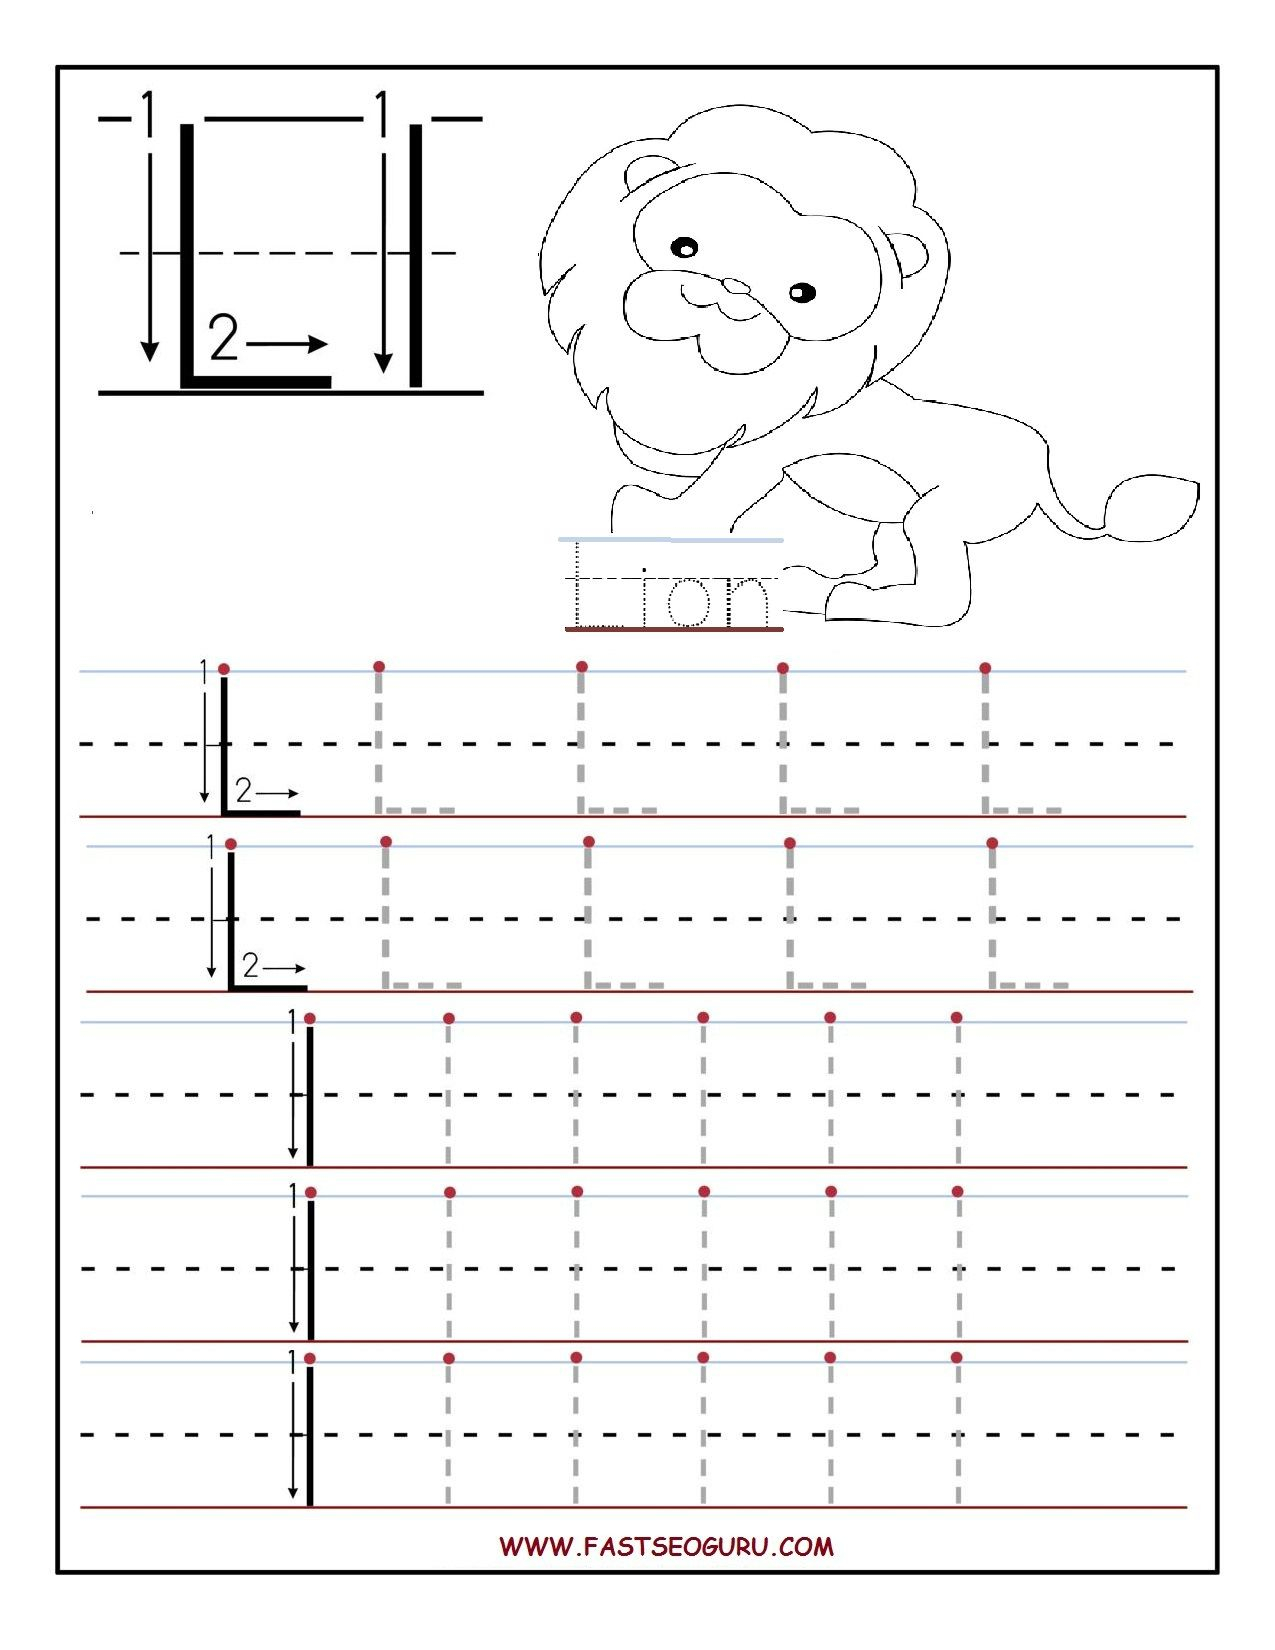 Printable Letter L Tracing Worksheets For Preschool intended for Letter L Tracing Worksheets Preschool